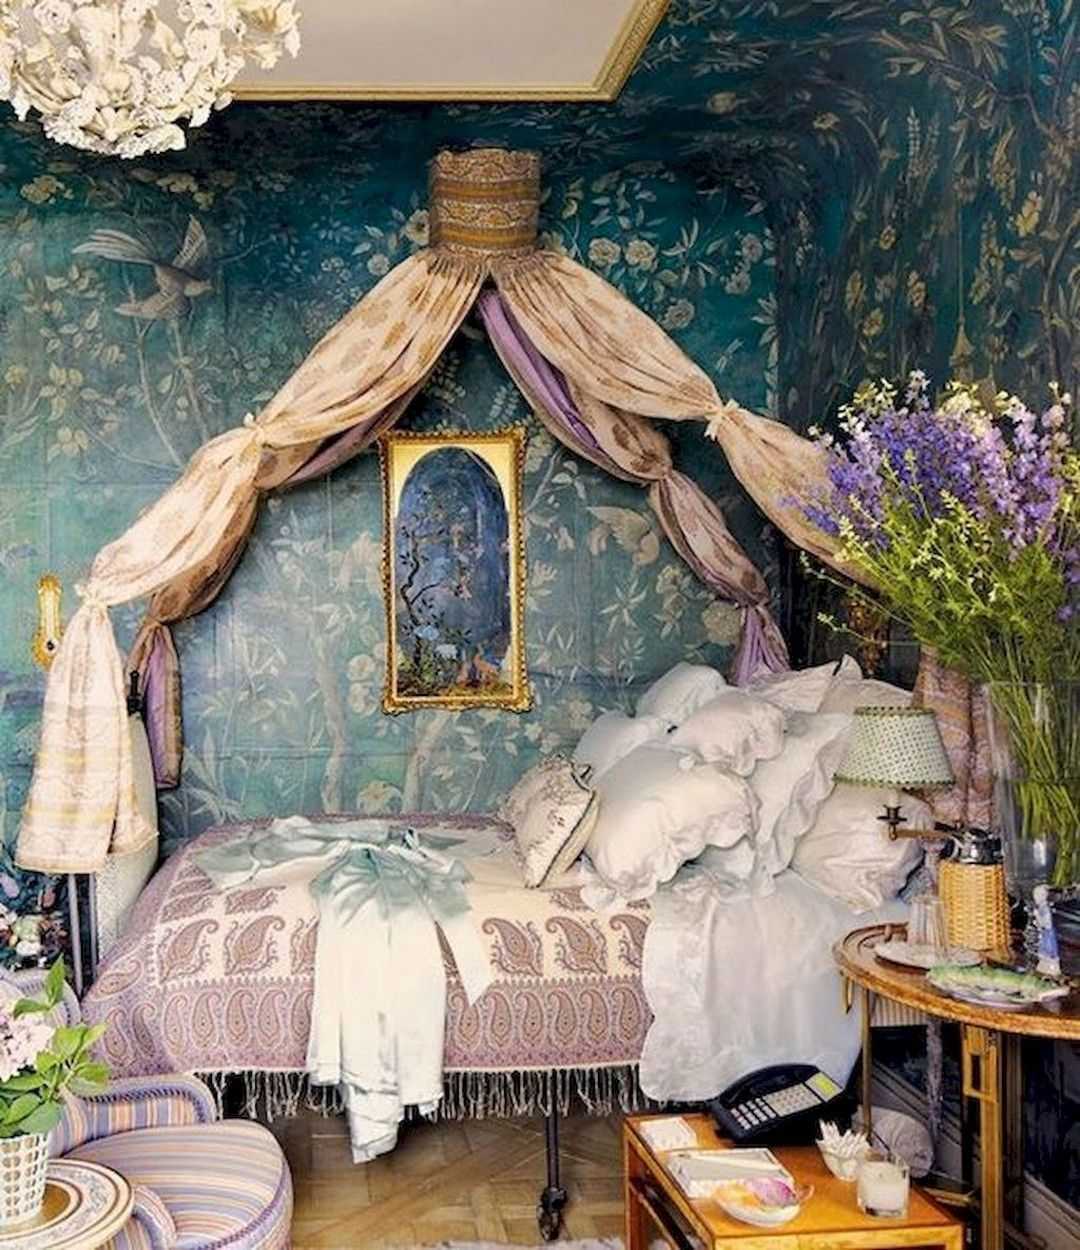 24 Comfortable Romantic Bedroom Decor Design And Ideas Fairytale Bedroom Bedroom Decor Design Romantic Bedroom Decor